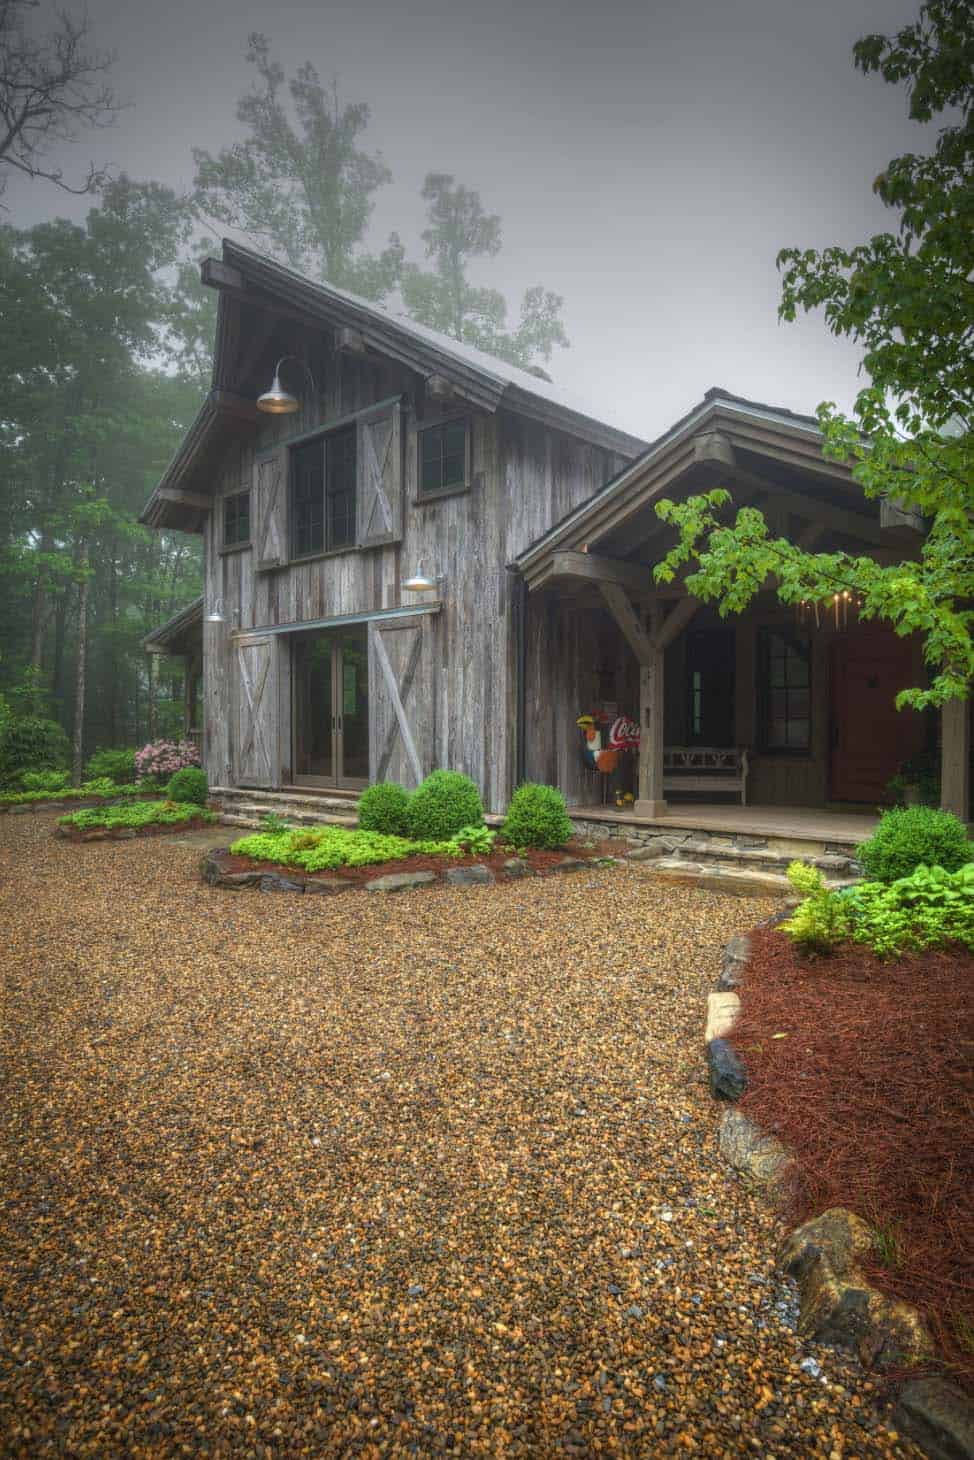 Rustic Barn Transformed Into Gorgeous Timber Frame Barn House By Rmt Architects